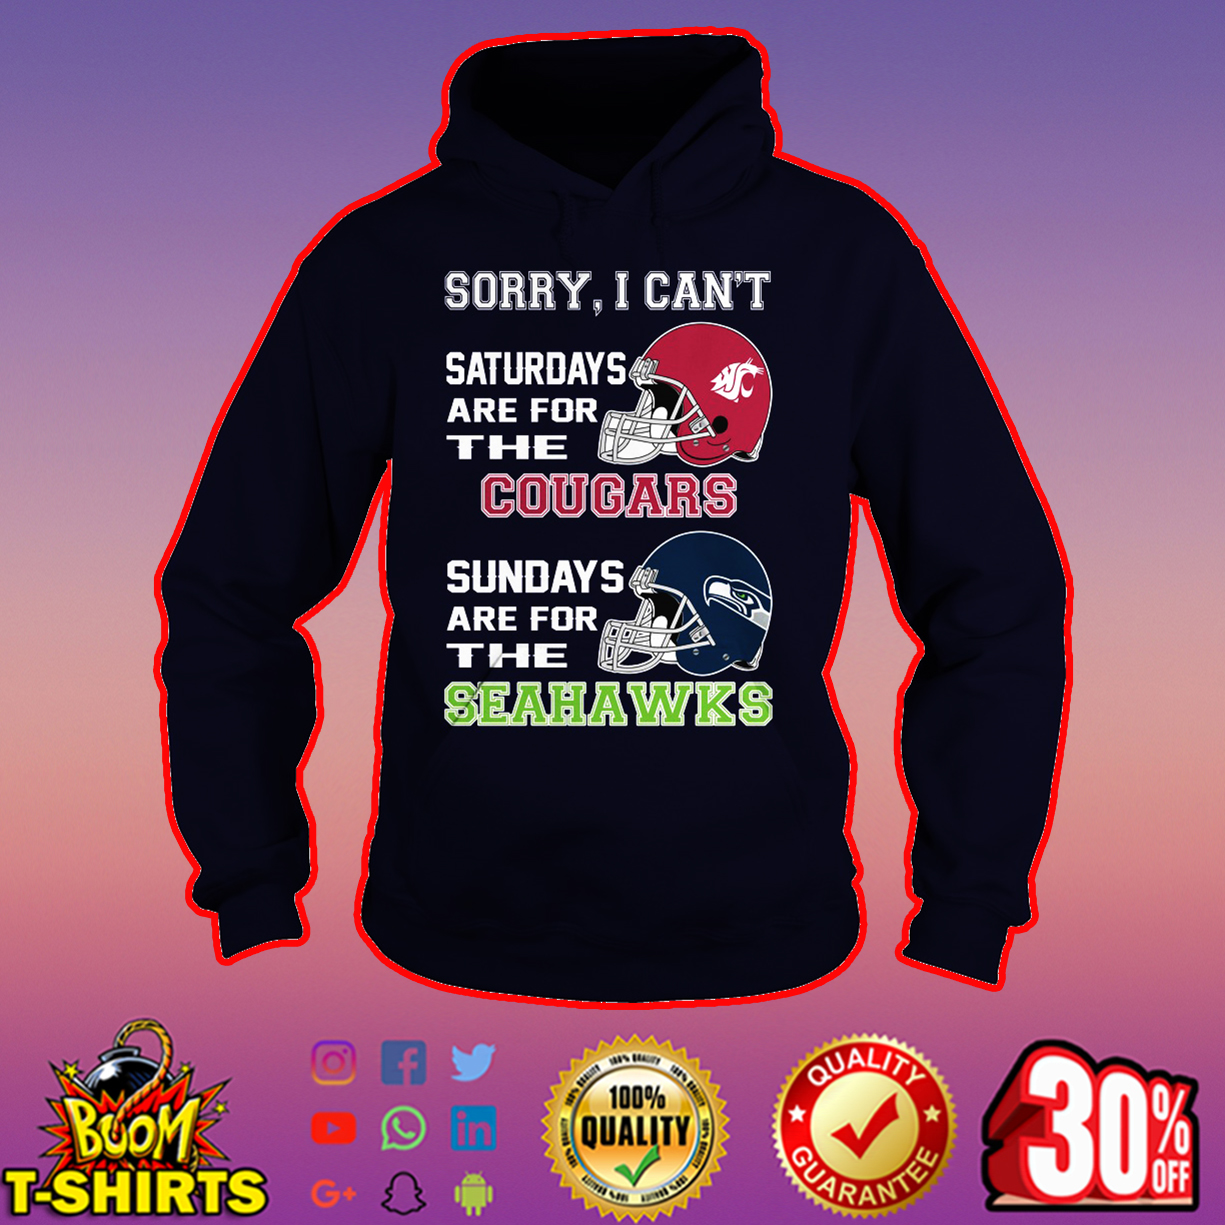 Sorry I can't saturdays are for the Cougars sundays are for the Seahawks hoodie